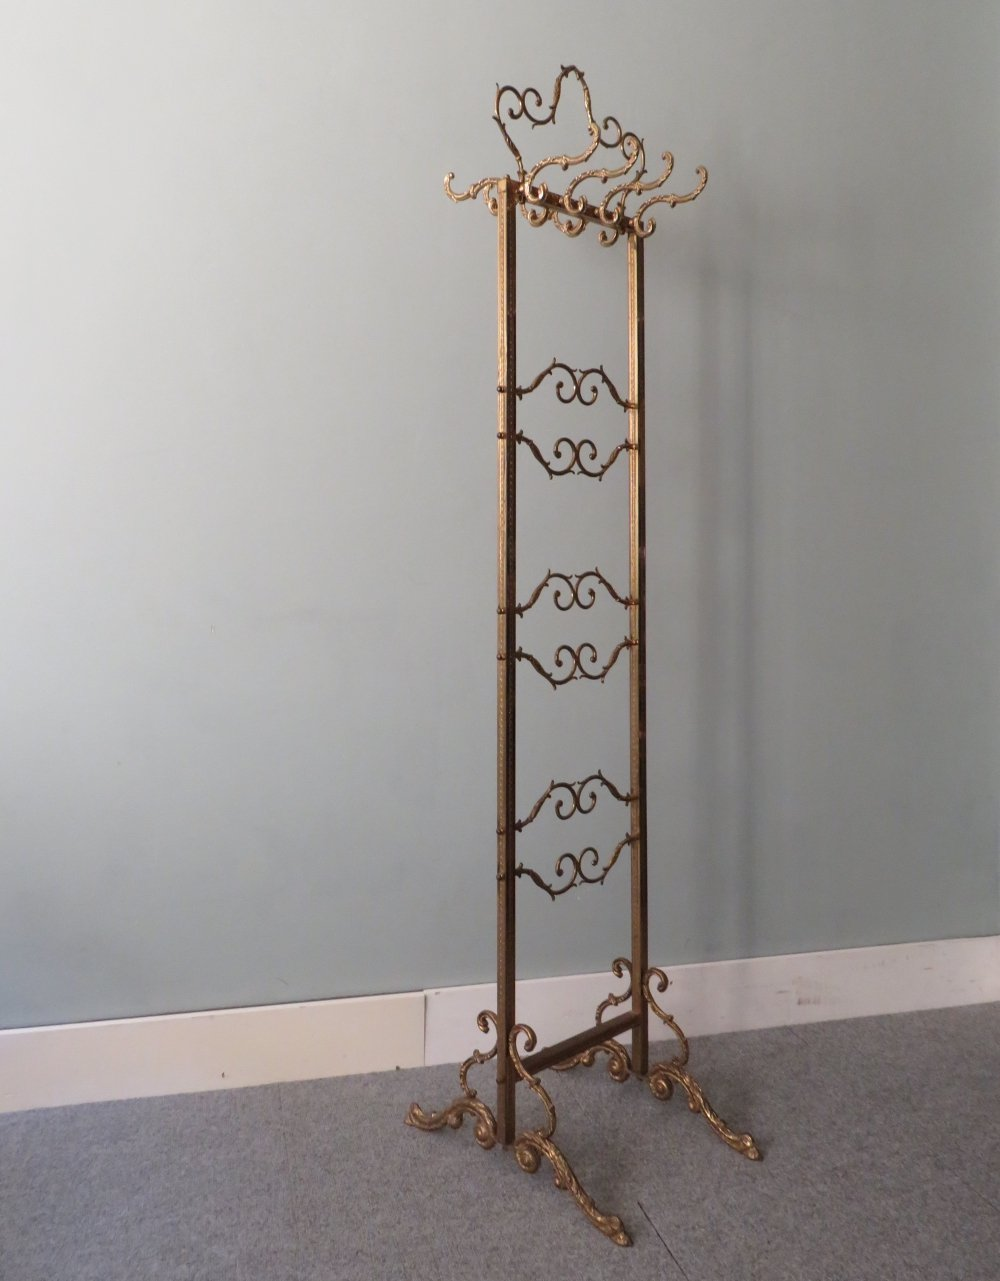 Free standing Hollywood Regency coat rack, 1970s